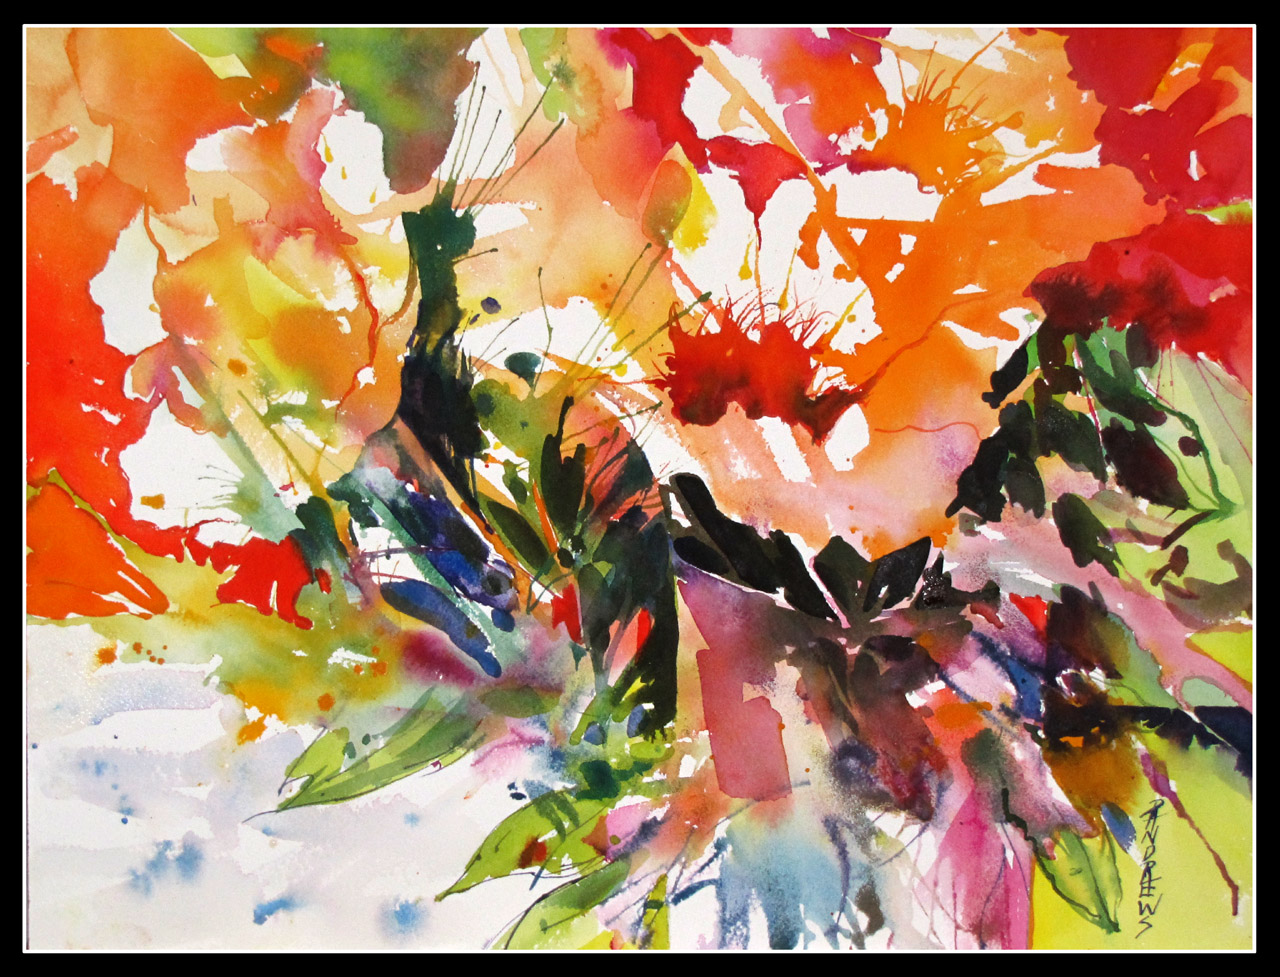 Watercolor artist in texas - Bountiful Abstract Floral Watercolor Texas Artist Rae Andrews